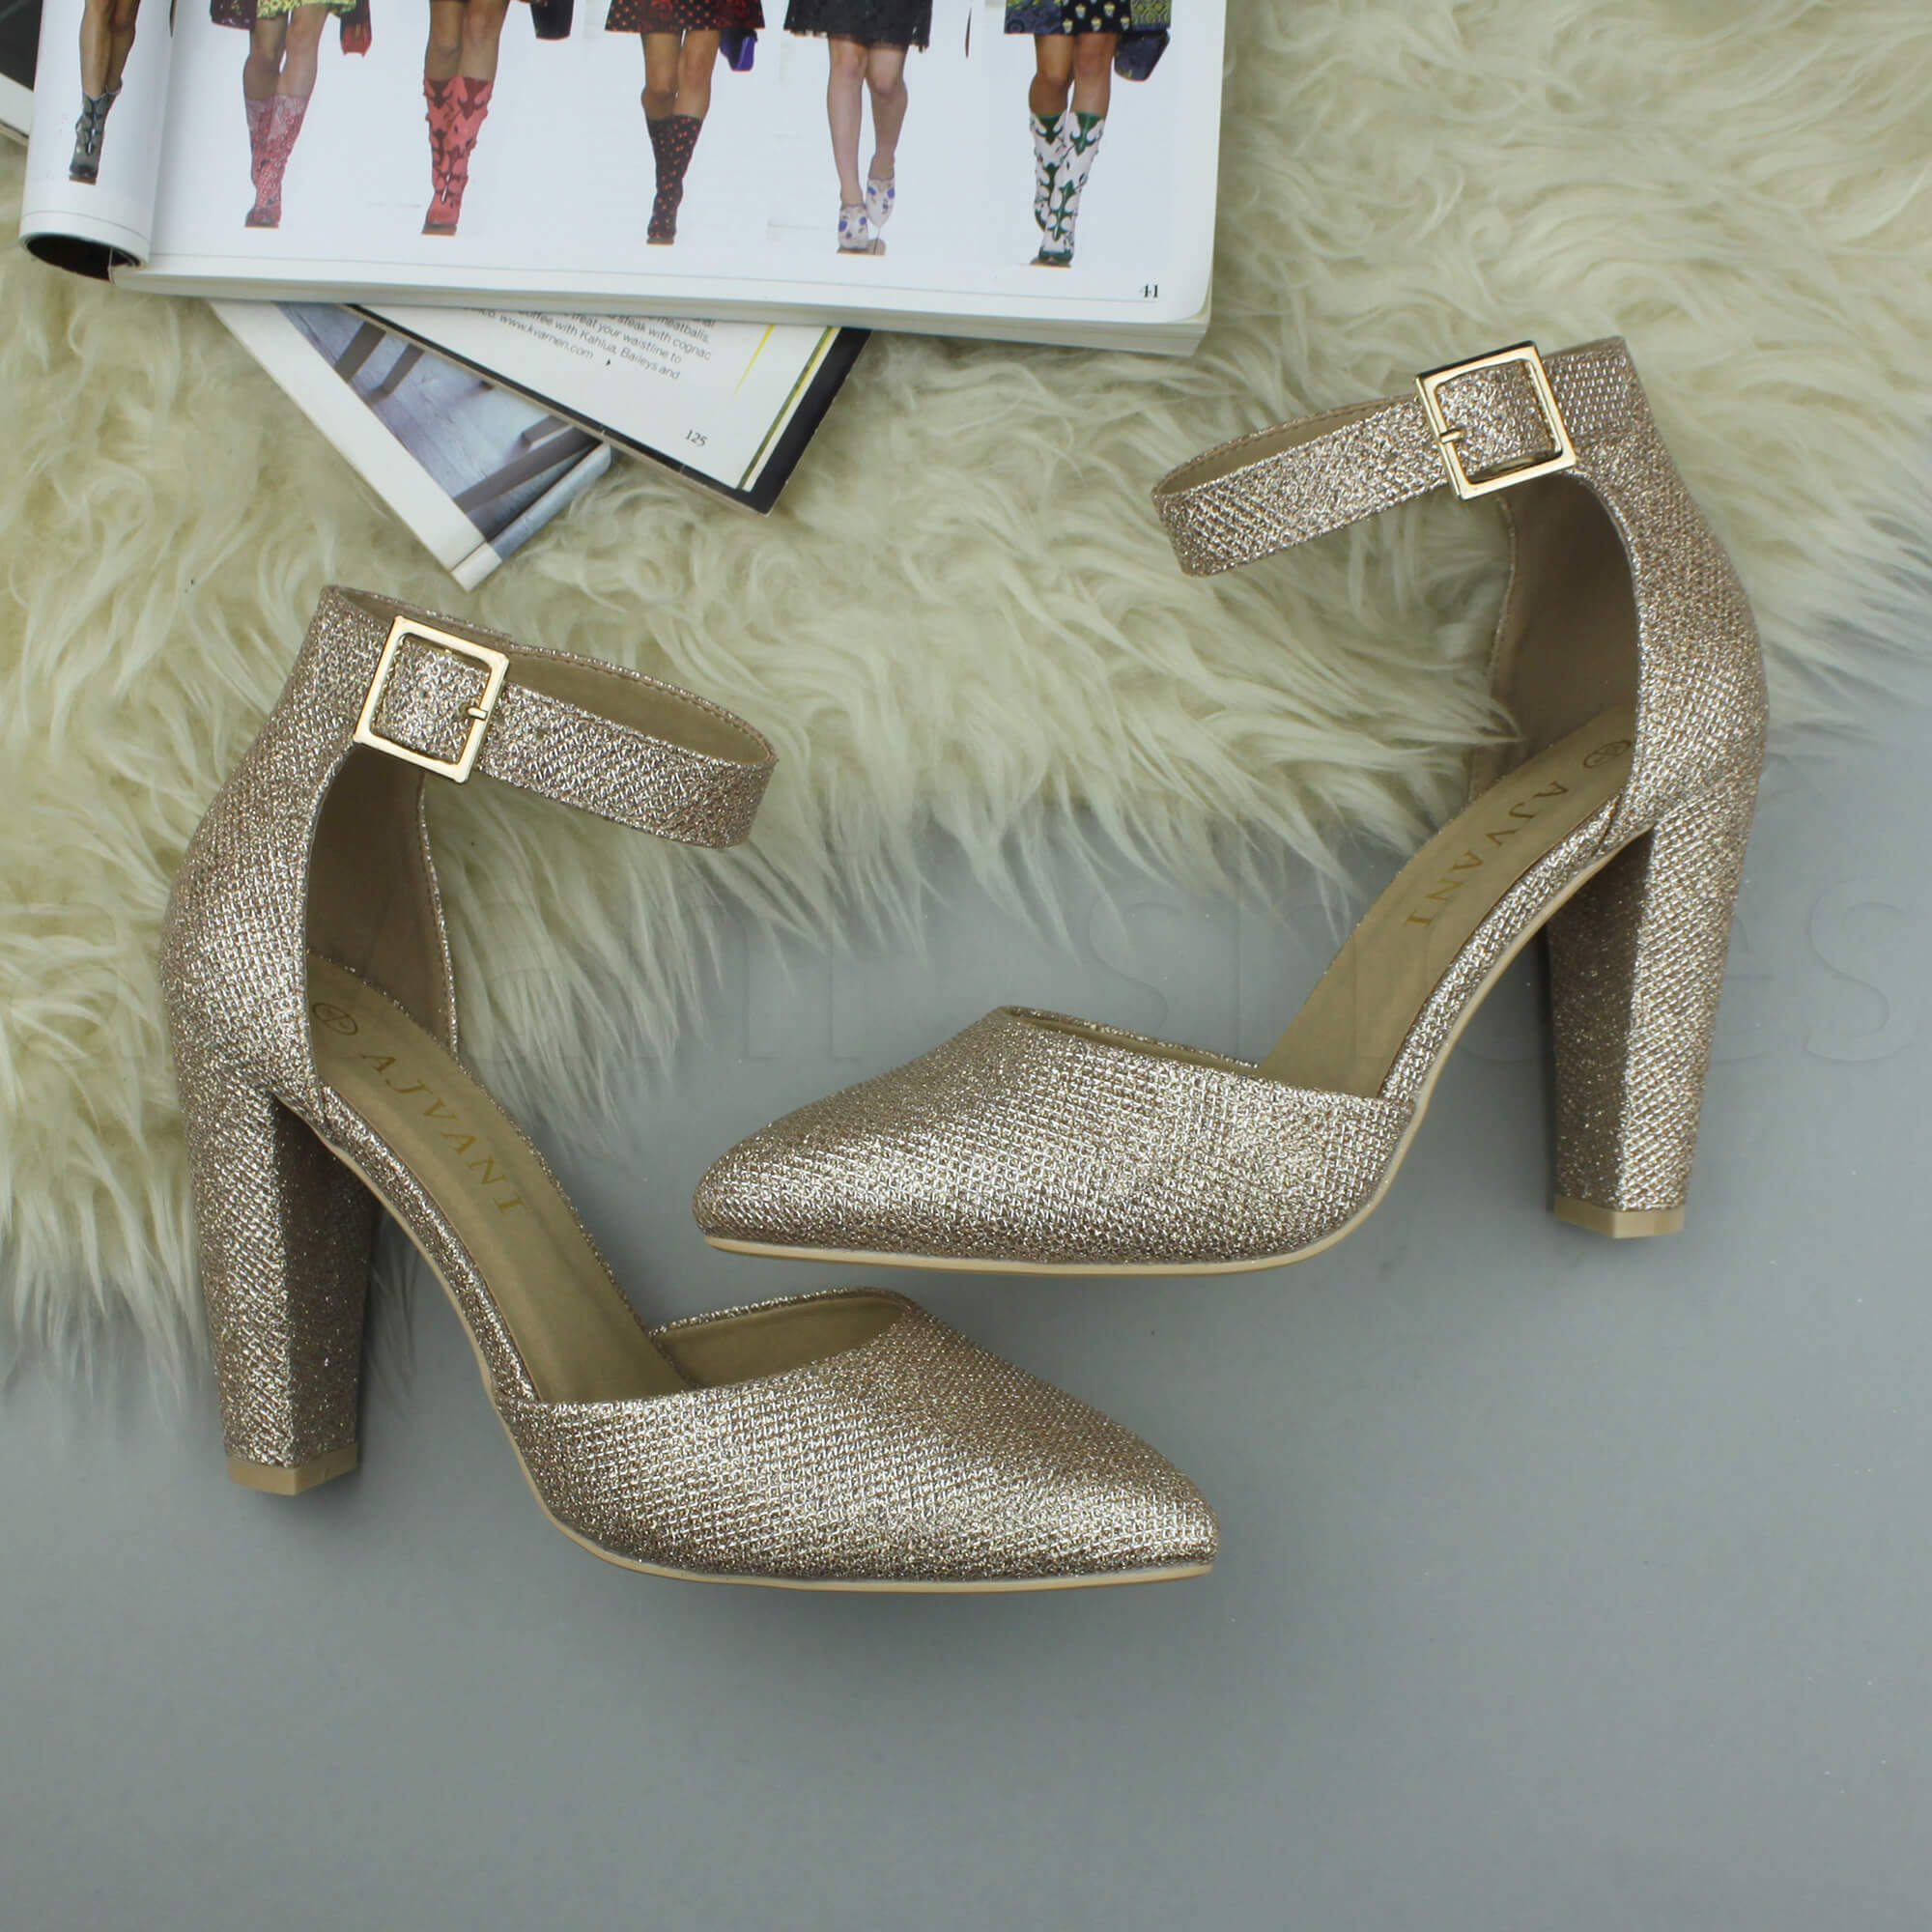 WOMENS-LADIES-HIGH-BLOCK-HEEL-ANKLE-STRAP-BUCKLE-POINTED-COURT-SHOES-SIZE thumbnail 152